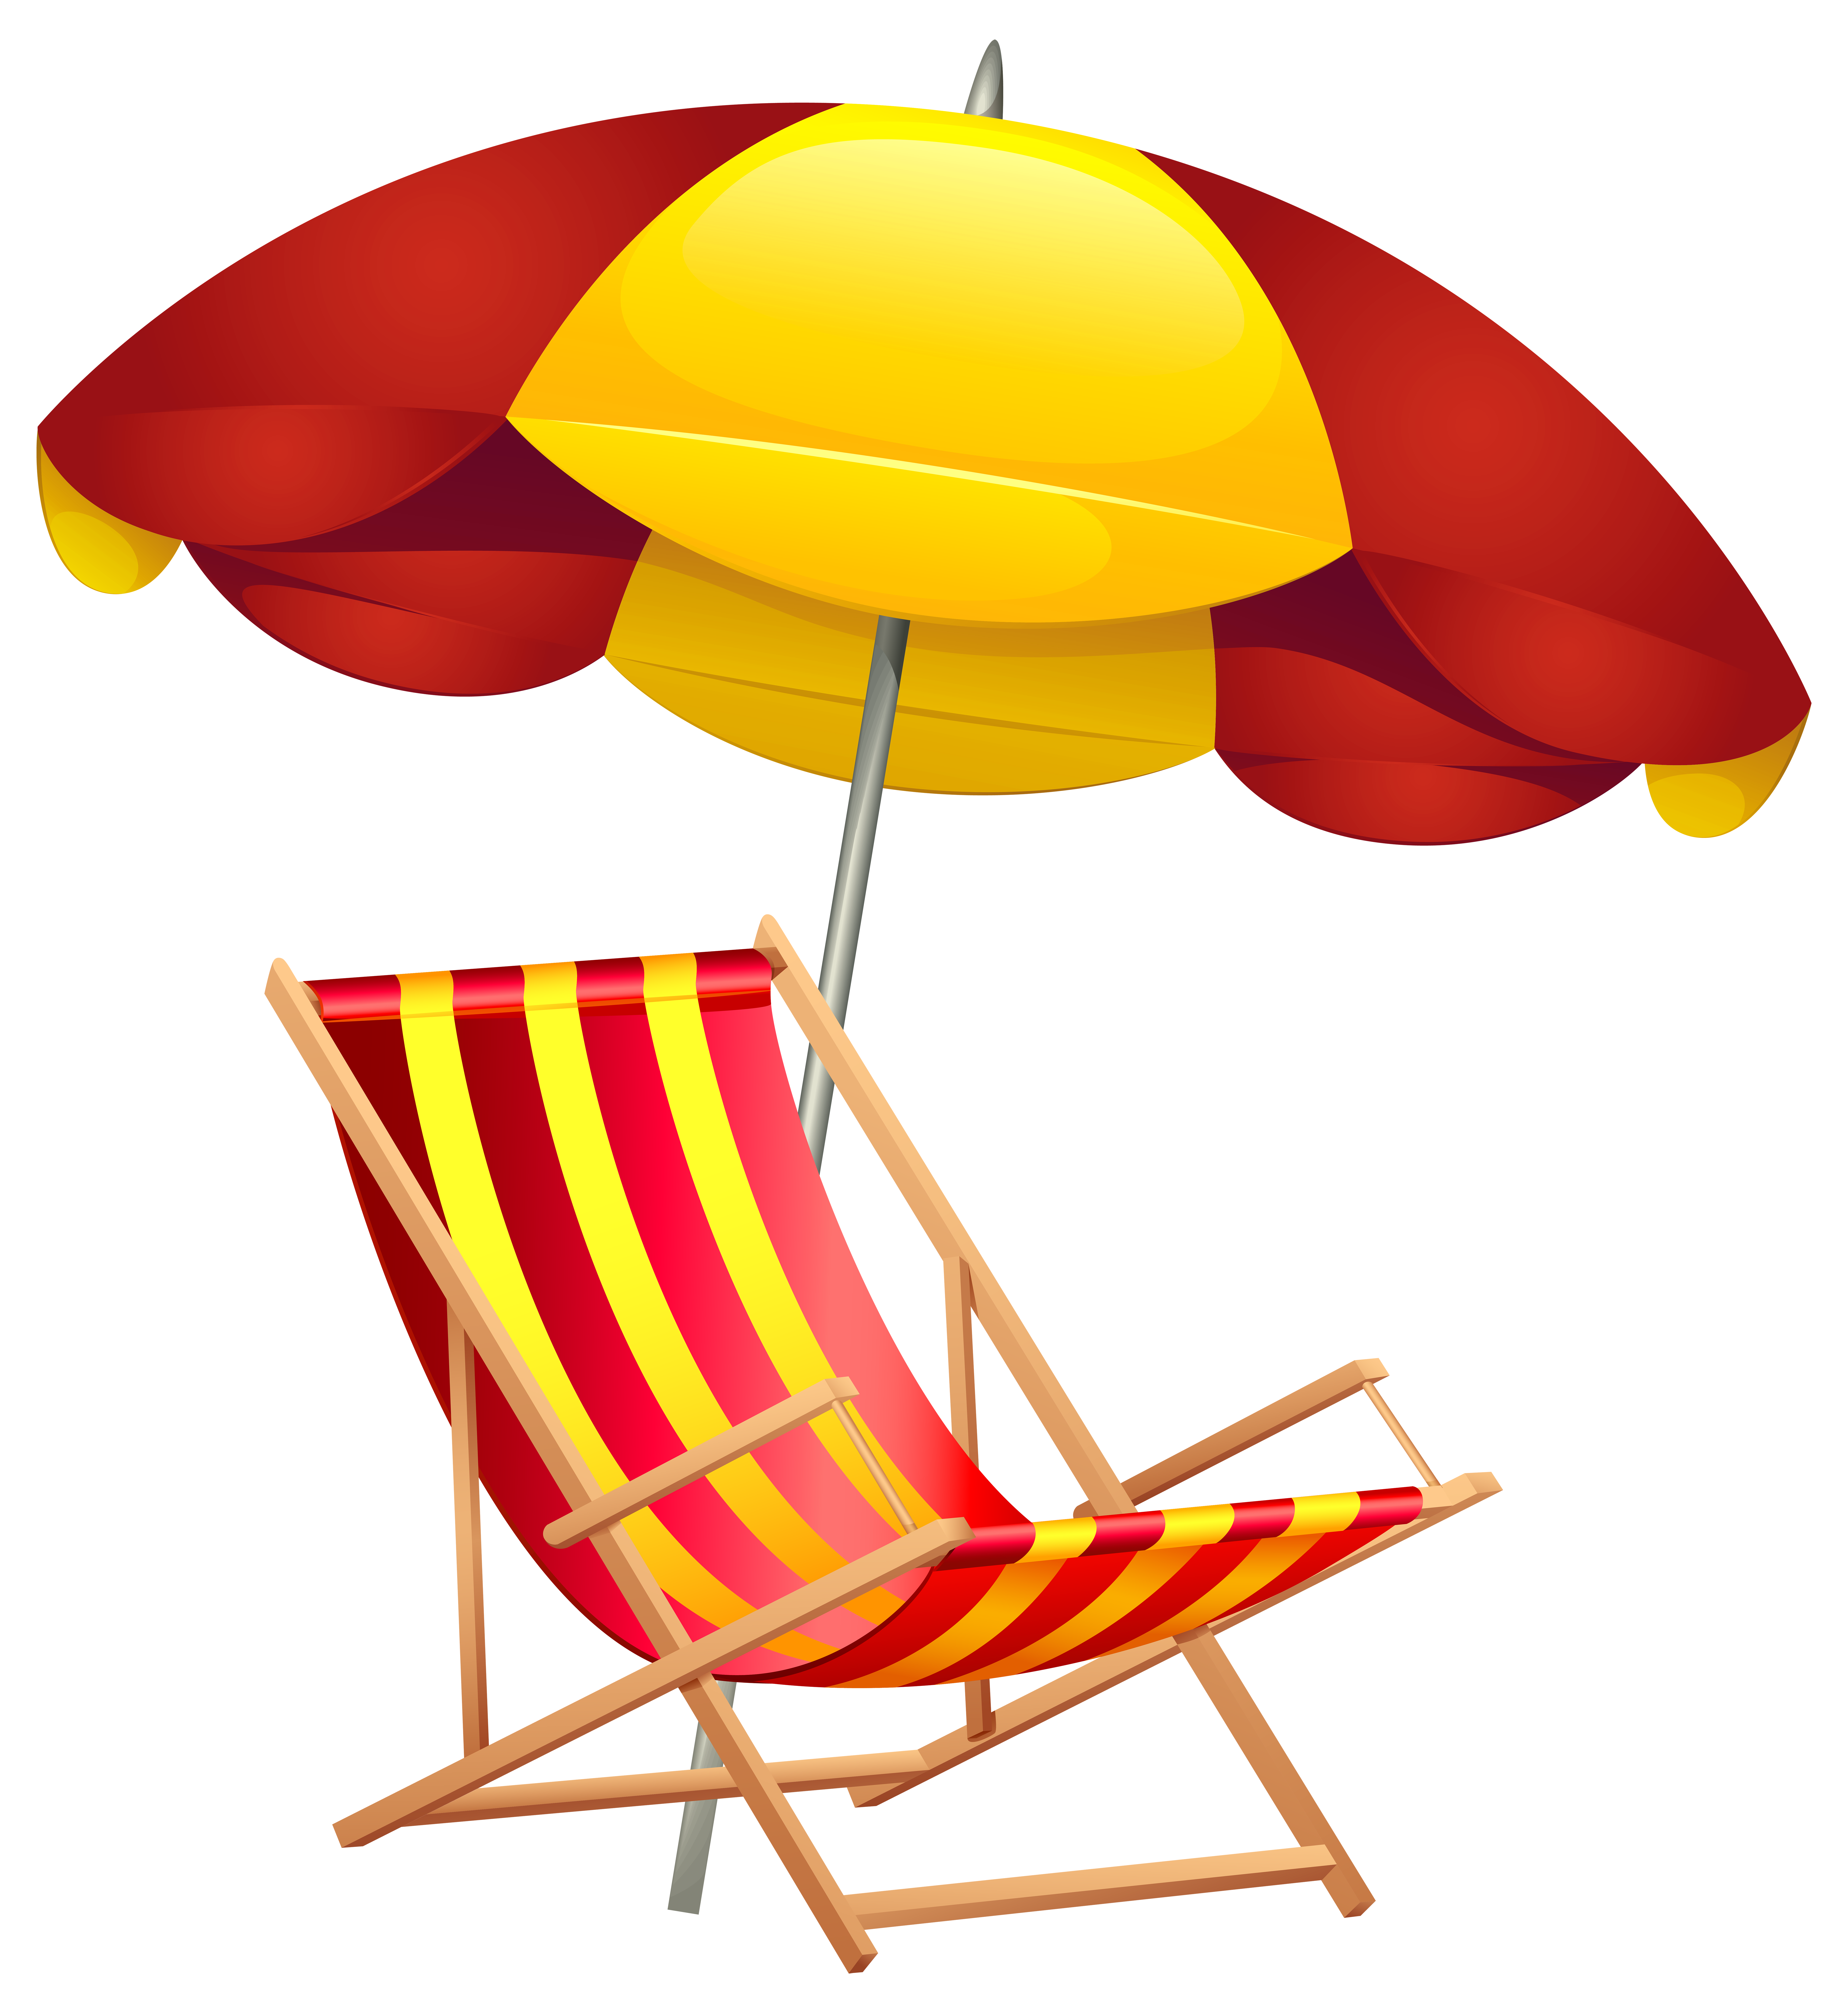 Sun umbrella clipart picture download Beach Umbrella Clipart at GetDrawings.com | Free for personal use ... picture download